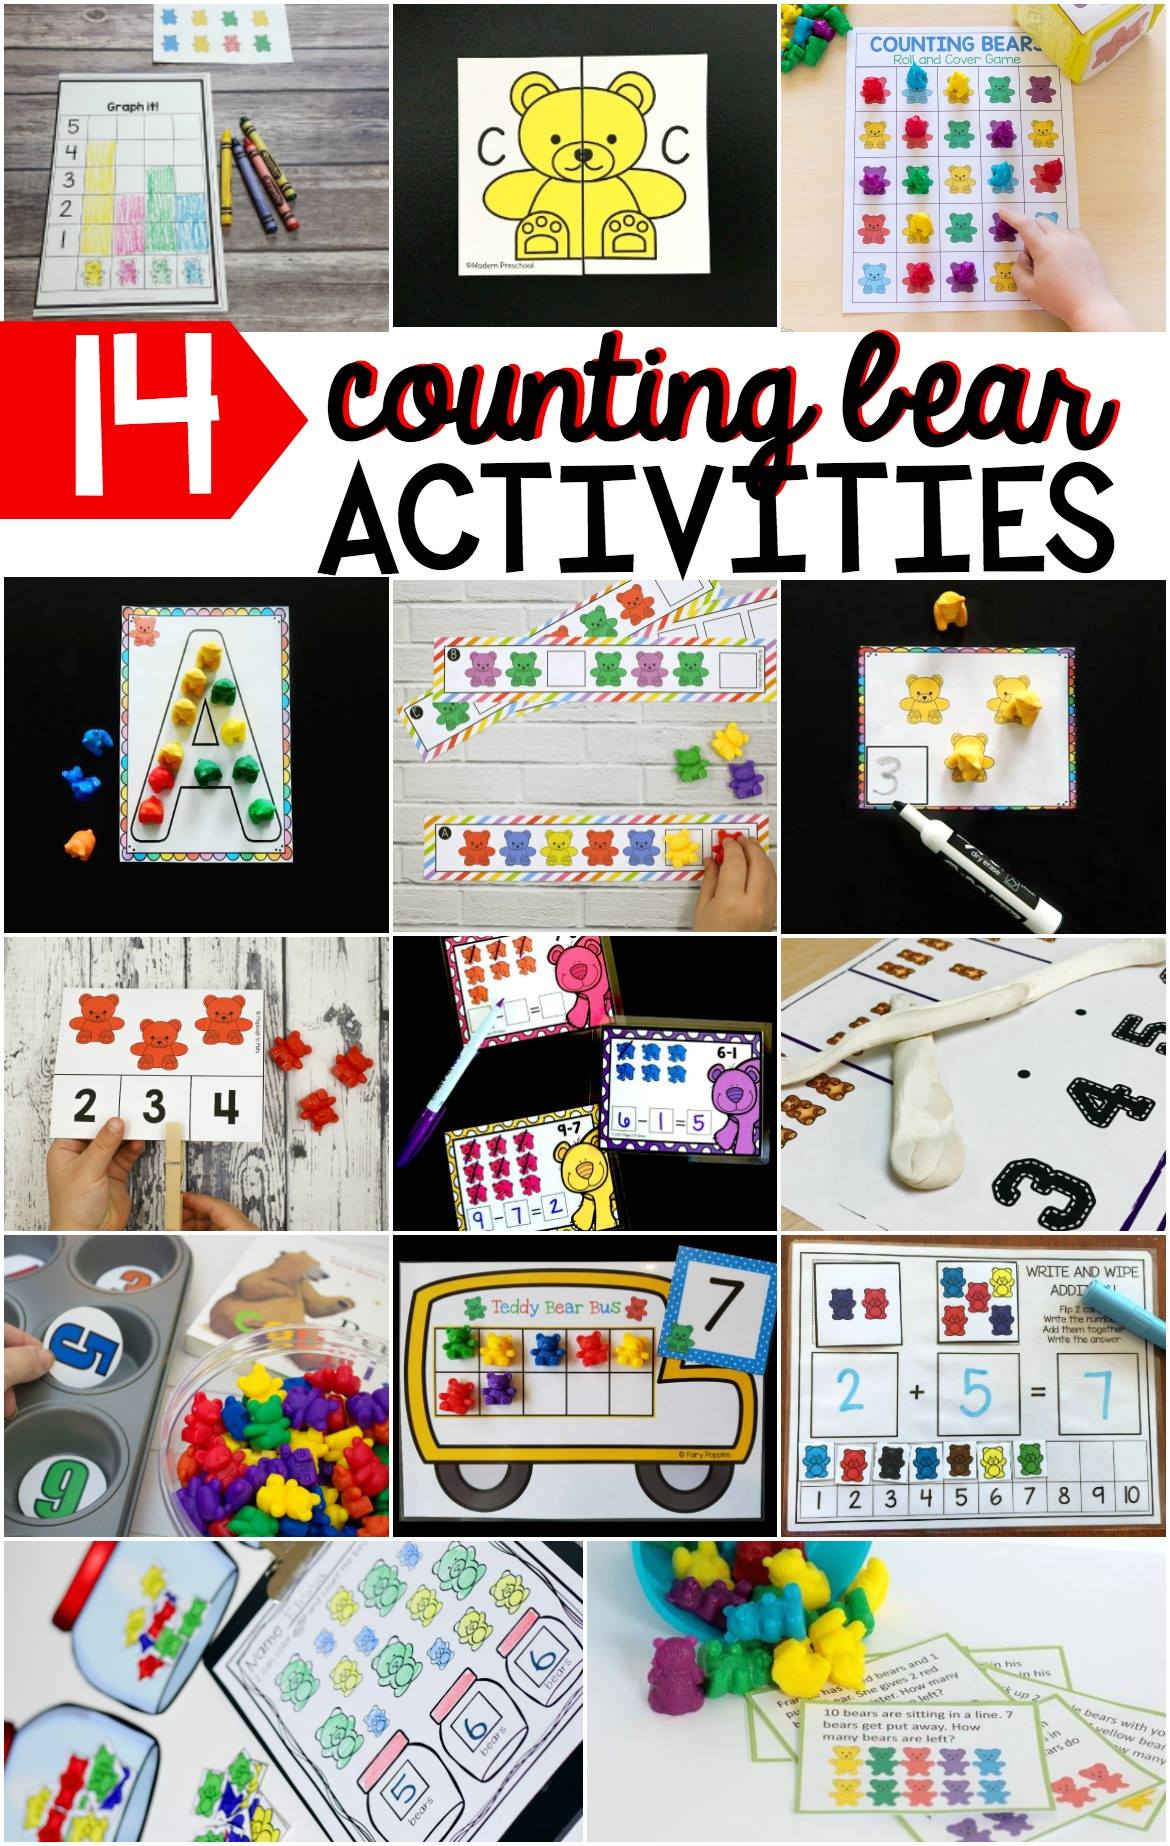 fun counting bear activities for kids!